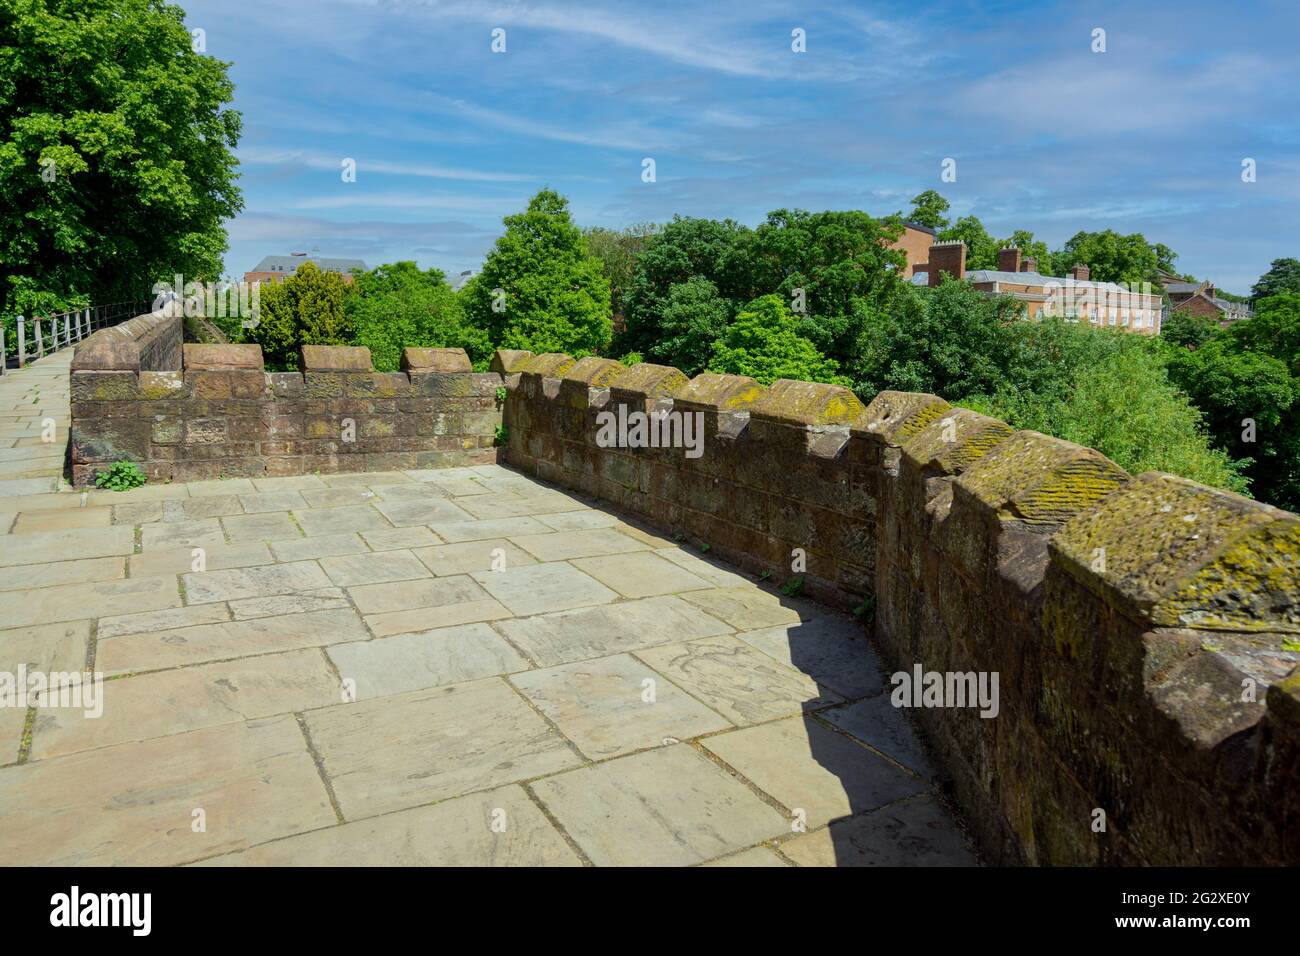 the-roman-wall-in-chester-2G2XE0Y.jpg